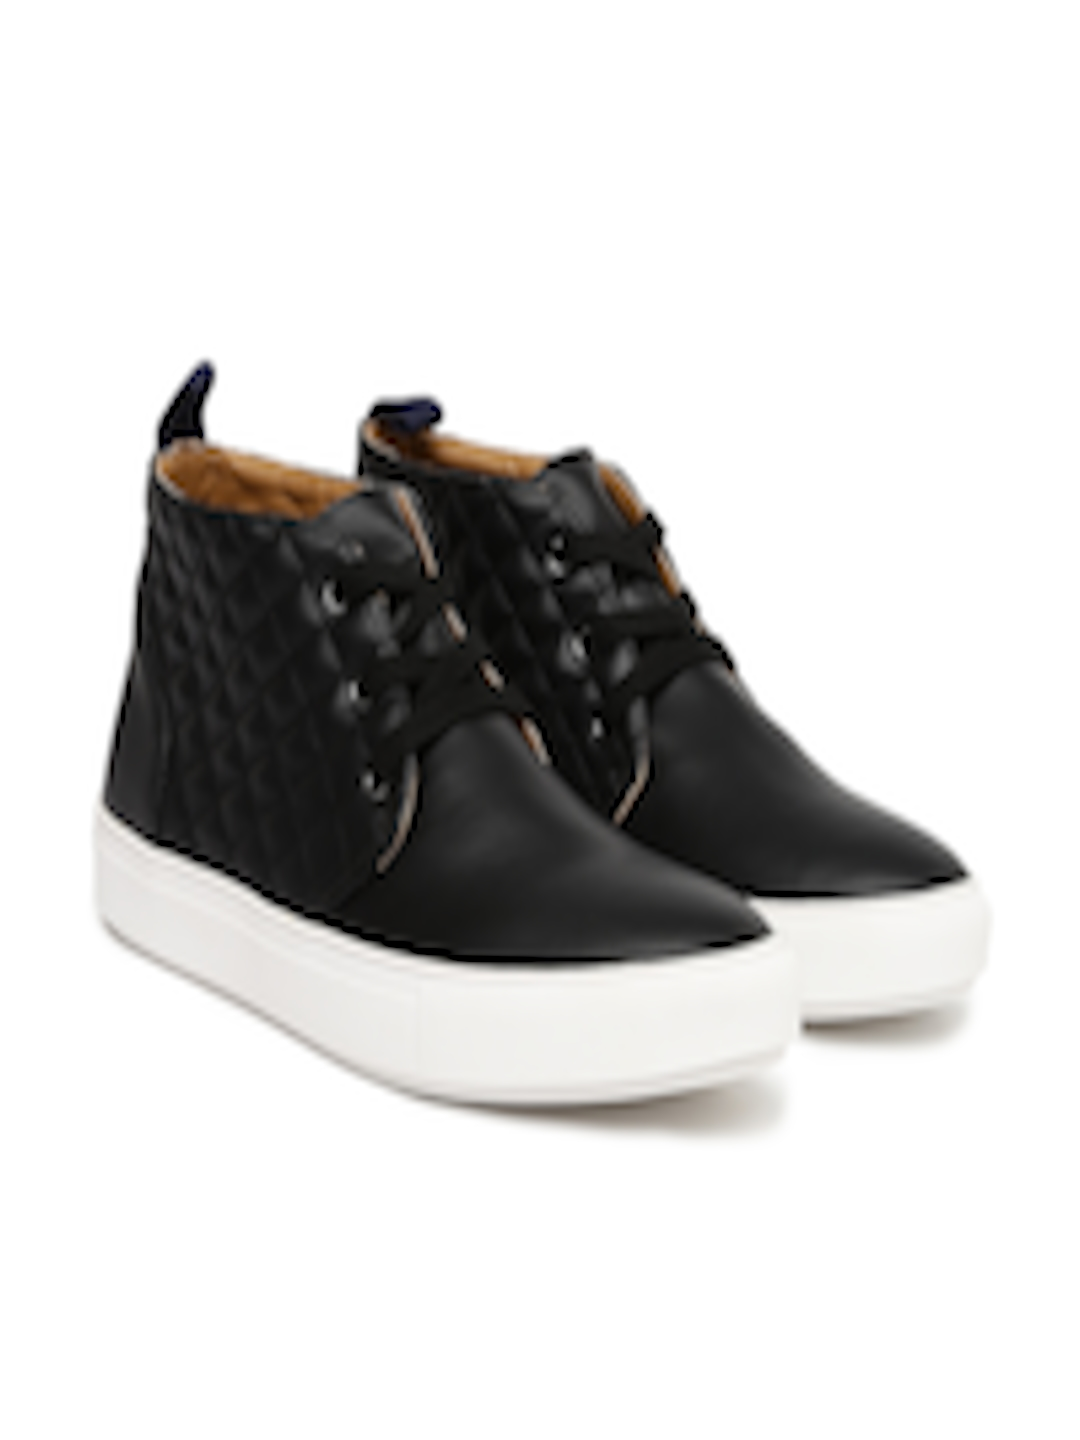 a720355bfc3 Buy Steve Madden Men Black Quilted Mid Top Sneakers - - Footwear for Men